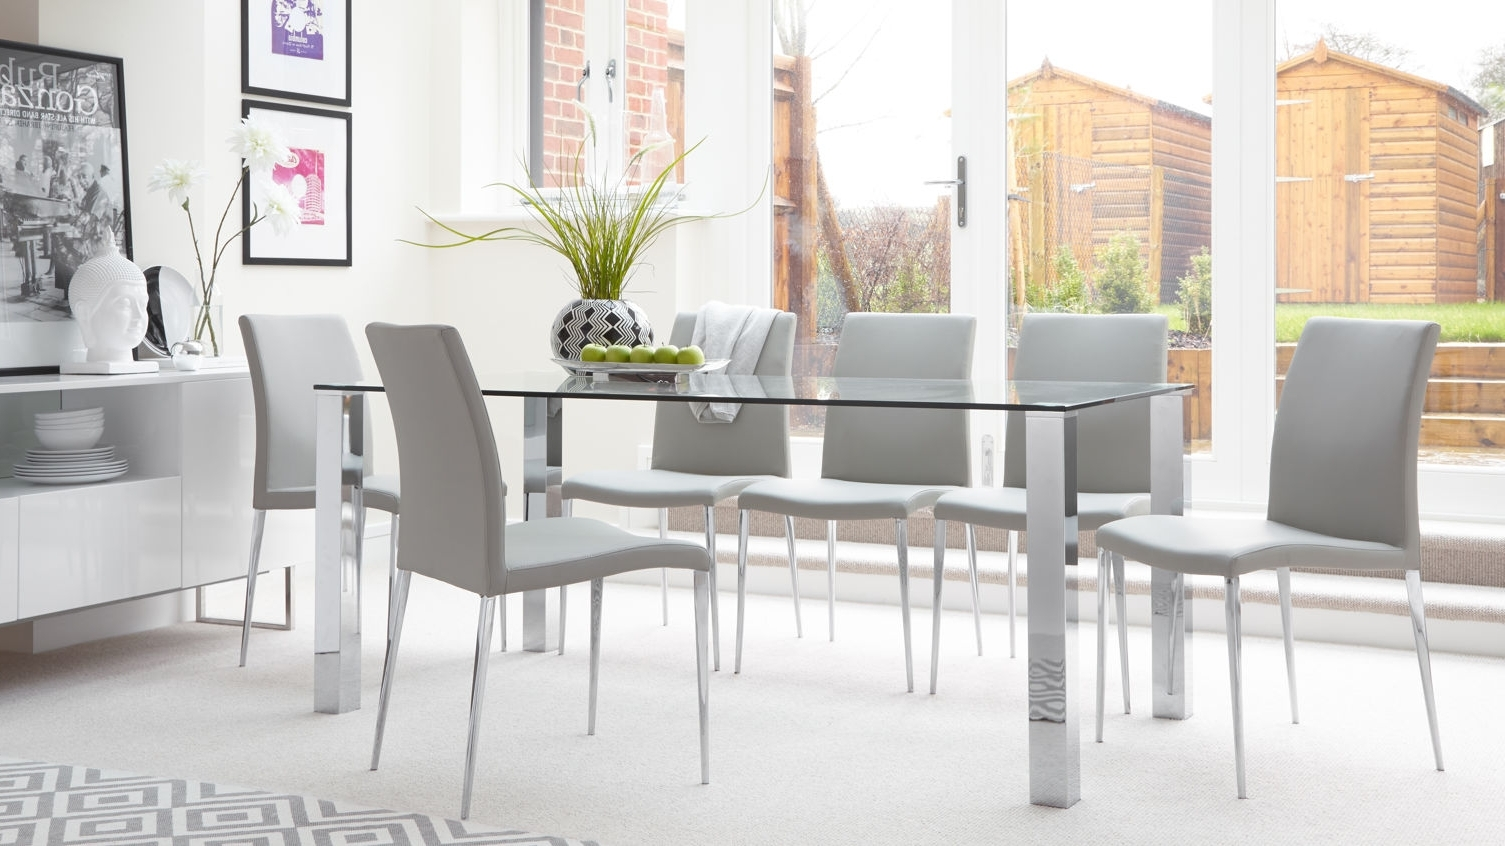 2017 Glass Top Dining Table With 8 Chairs – Glass Decorating Ideas Pertaining To 8 Seater White Dining Tables (View 16 of 25)